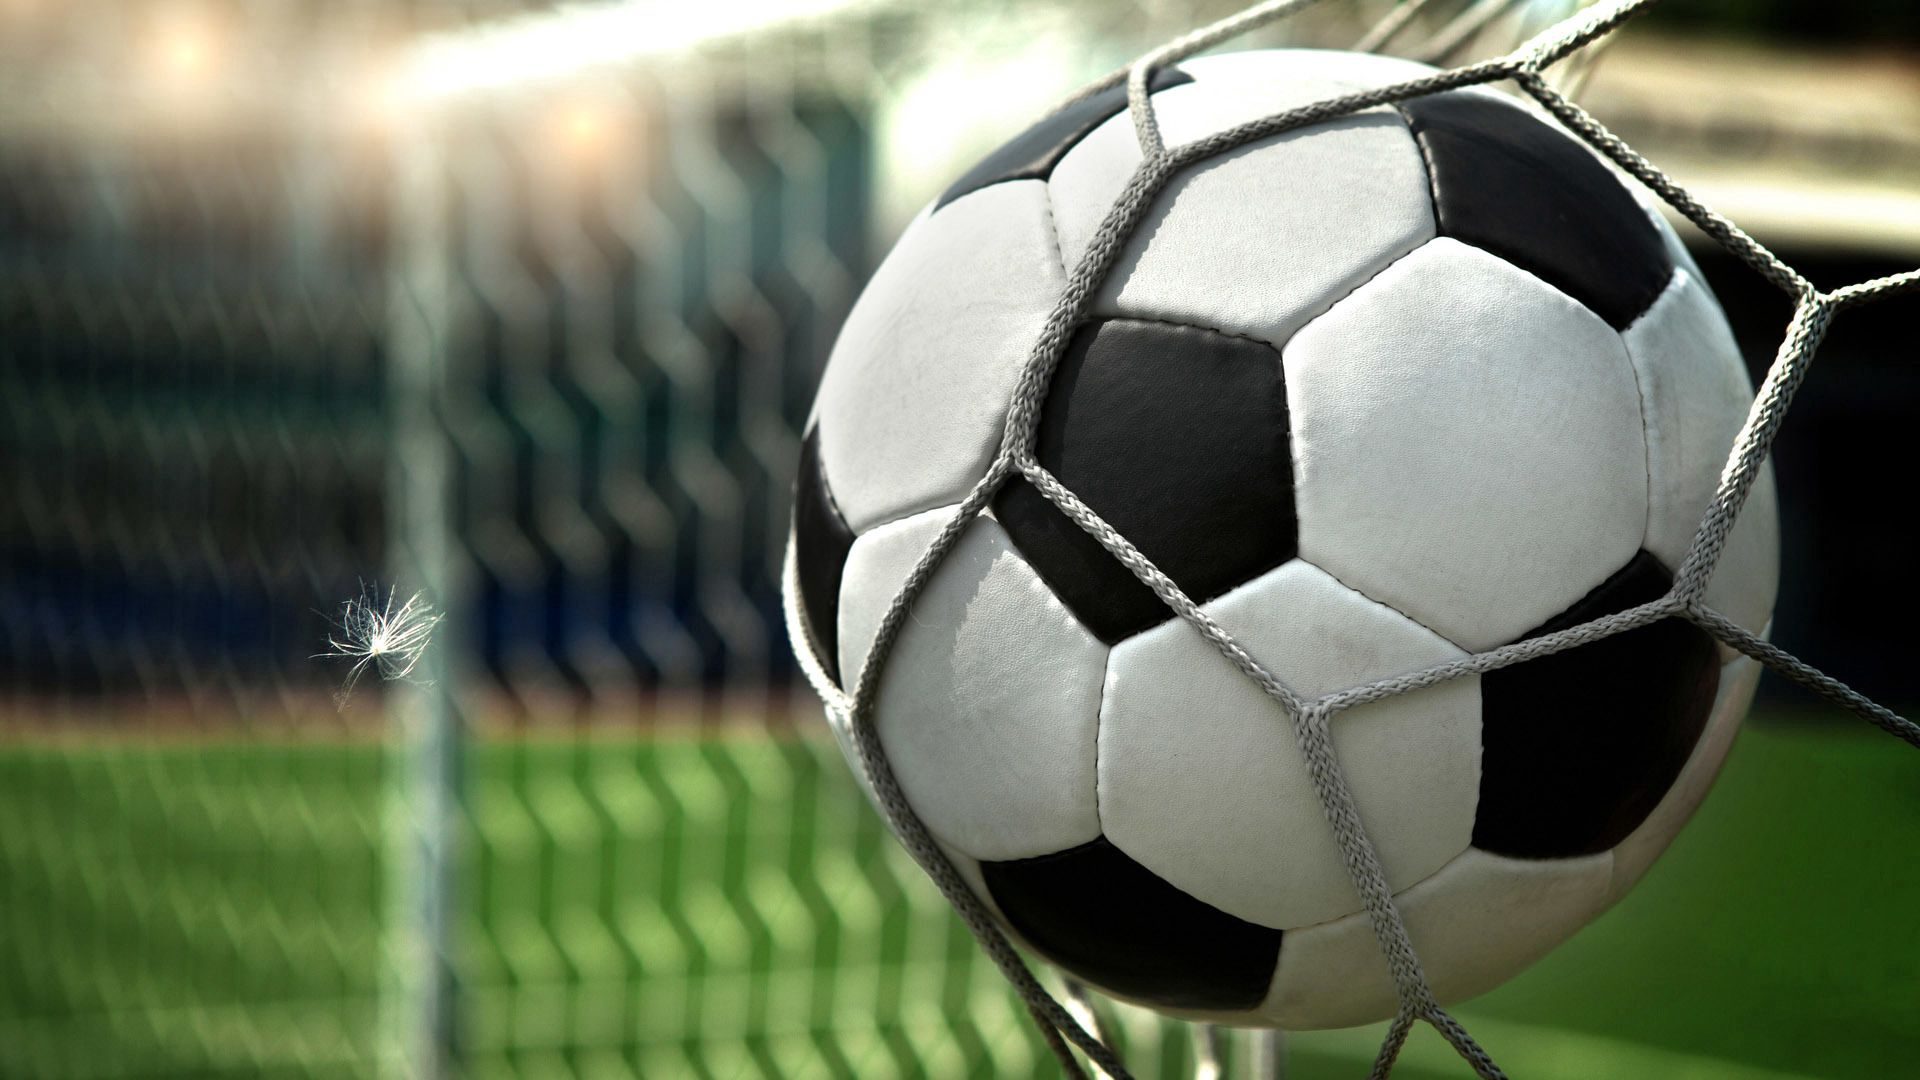 63463 download wallpaper Football, Sports, Grid, Ball screensavers and pictures for free